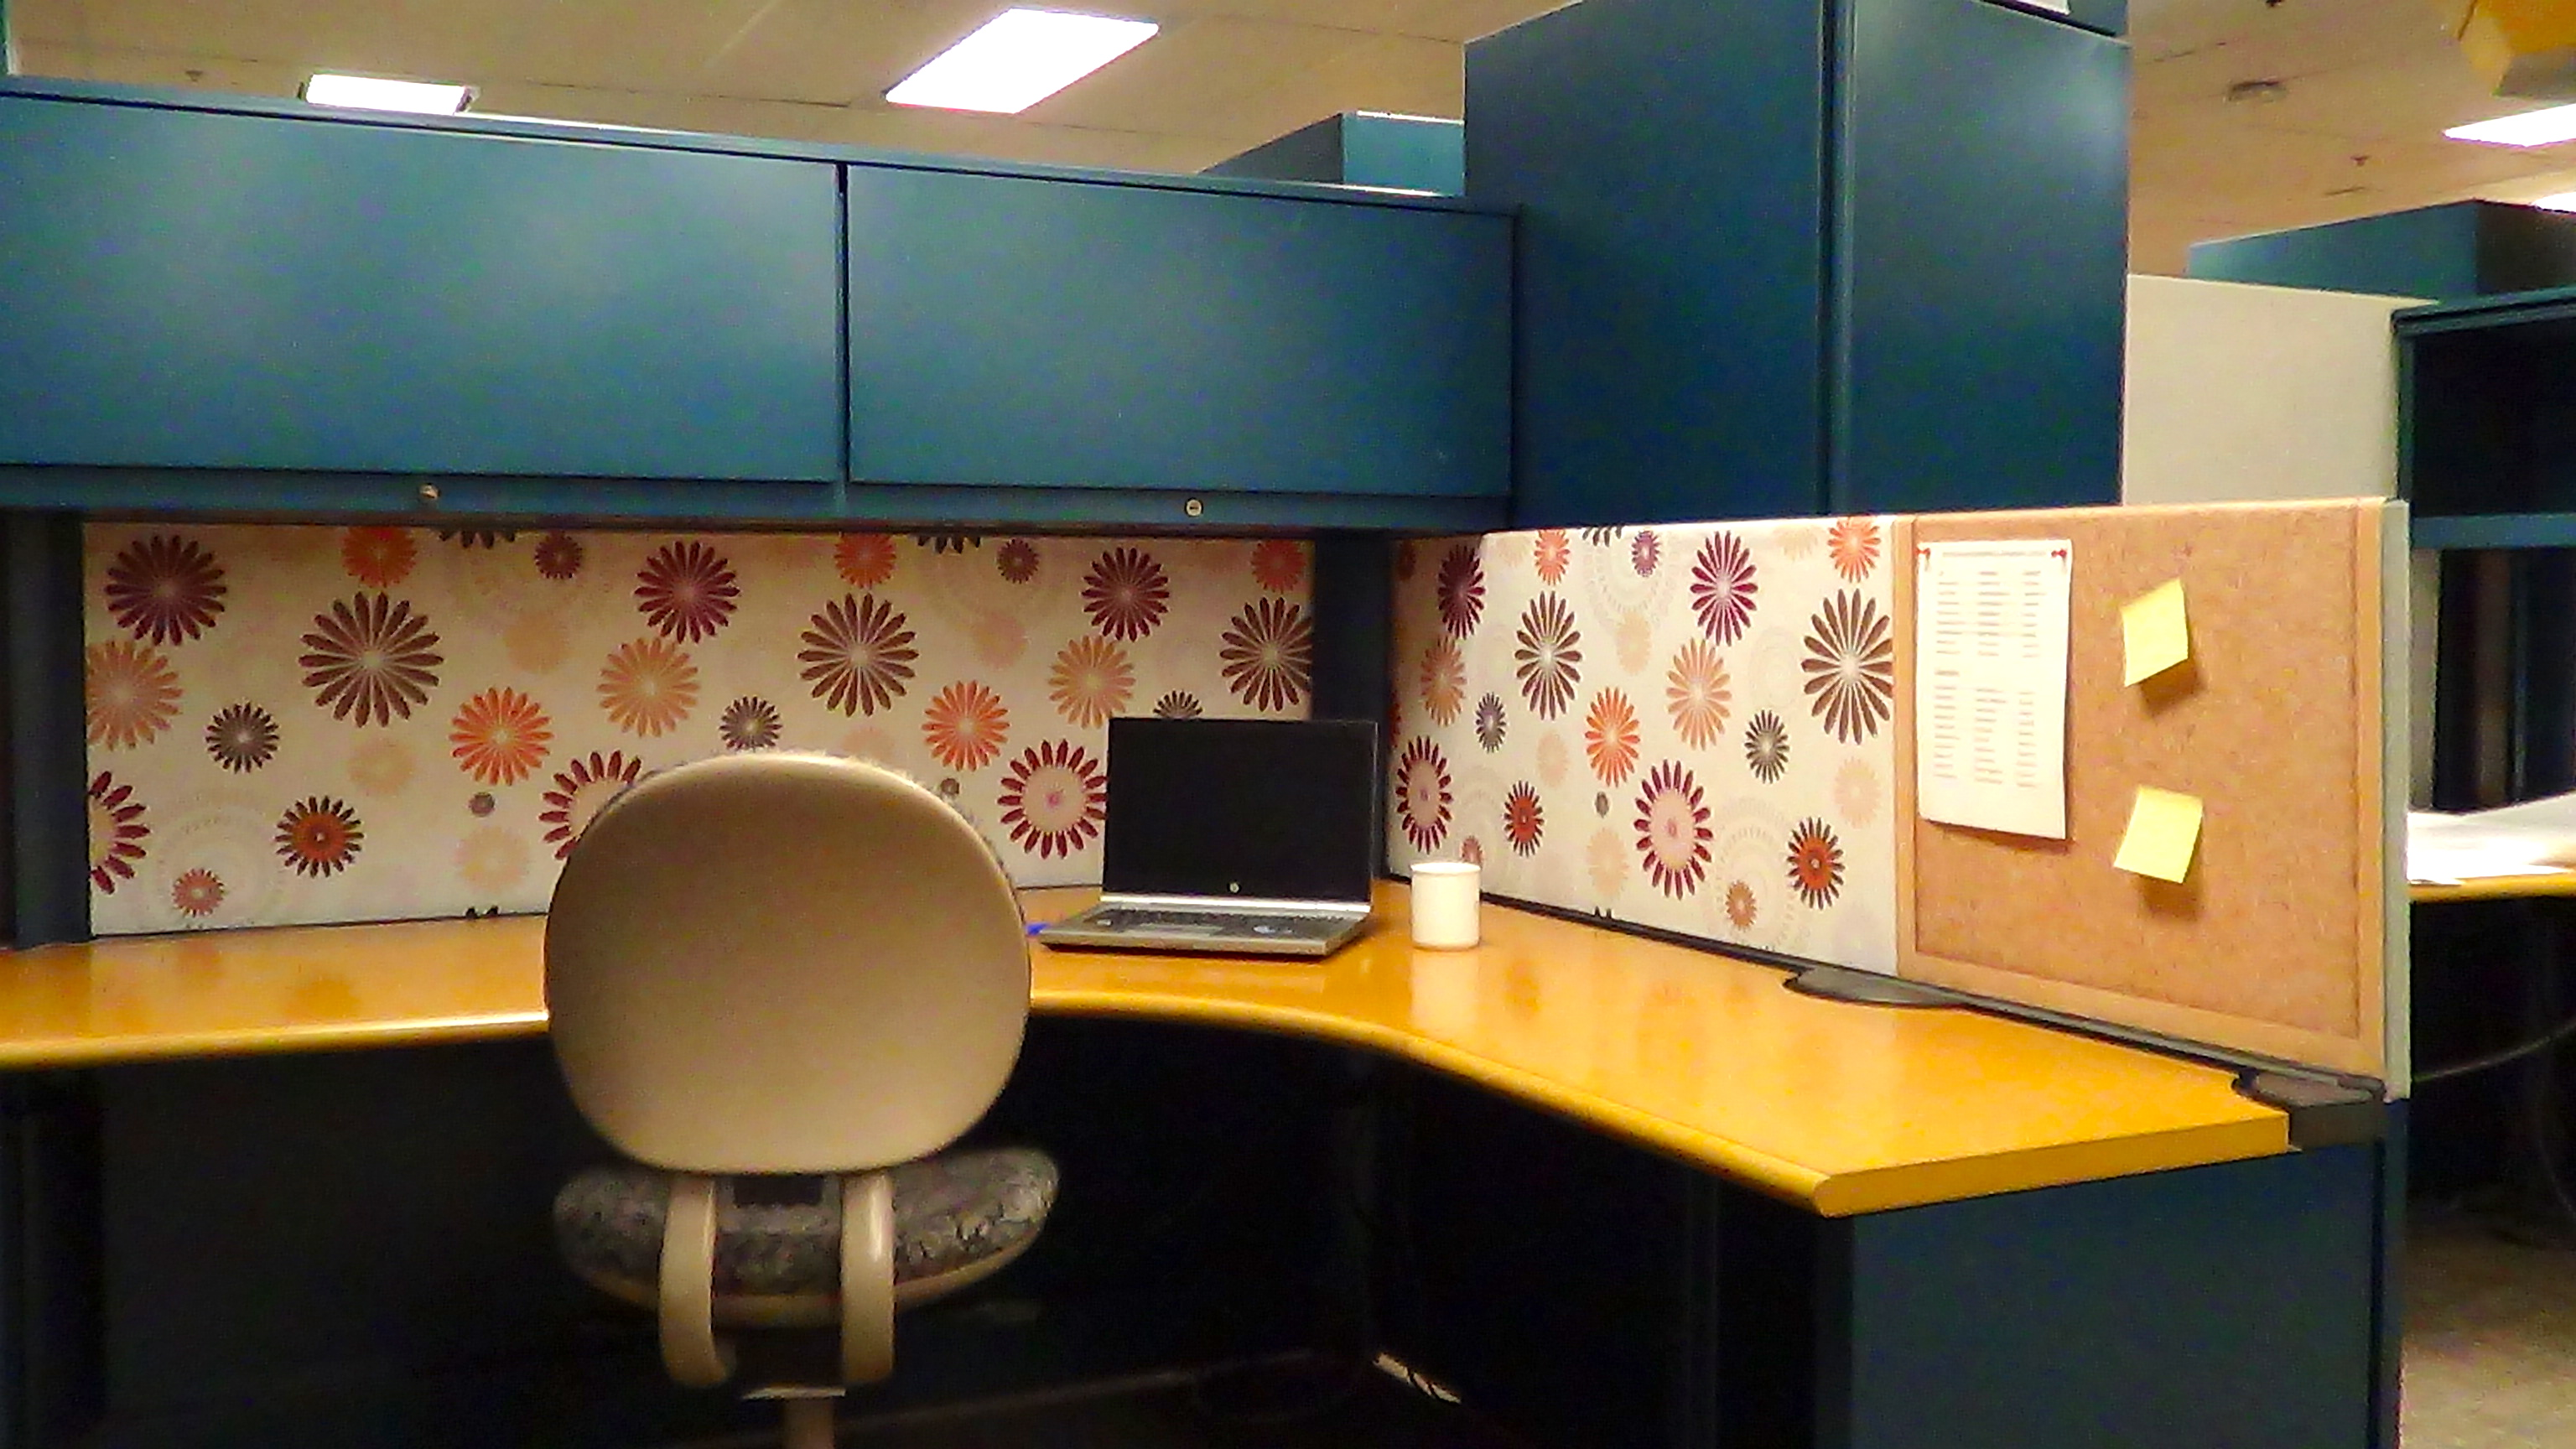 Cubicle Decorating Ideas Office Decorations Home Office Design 3072x1728